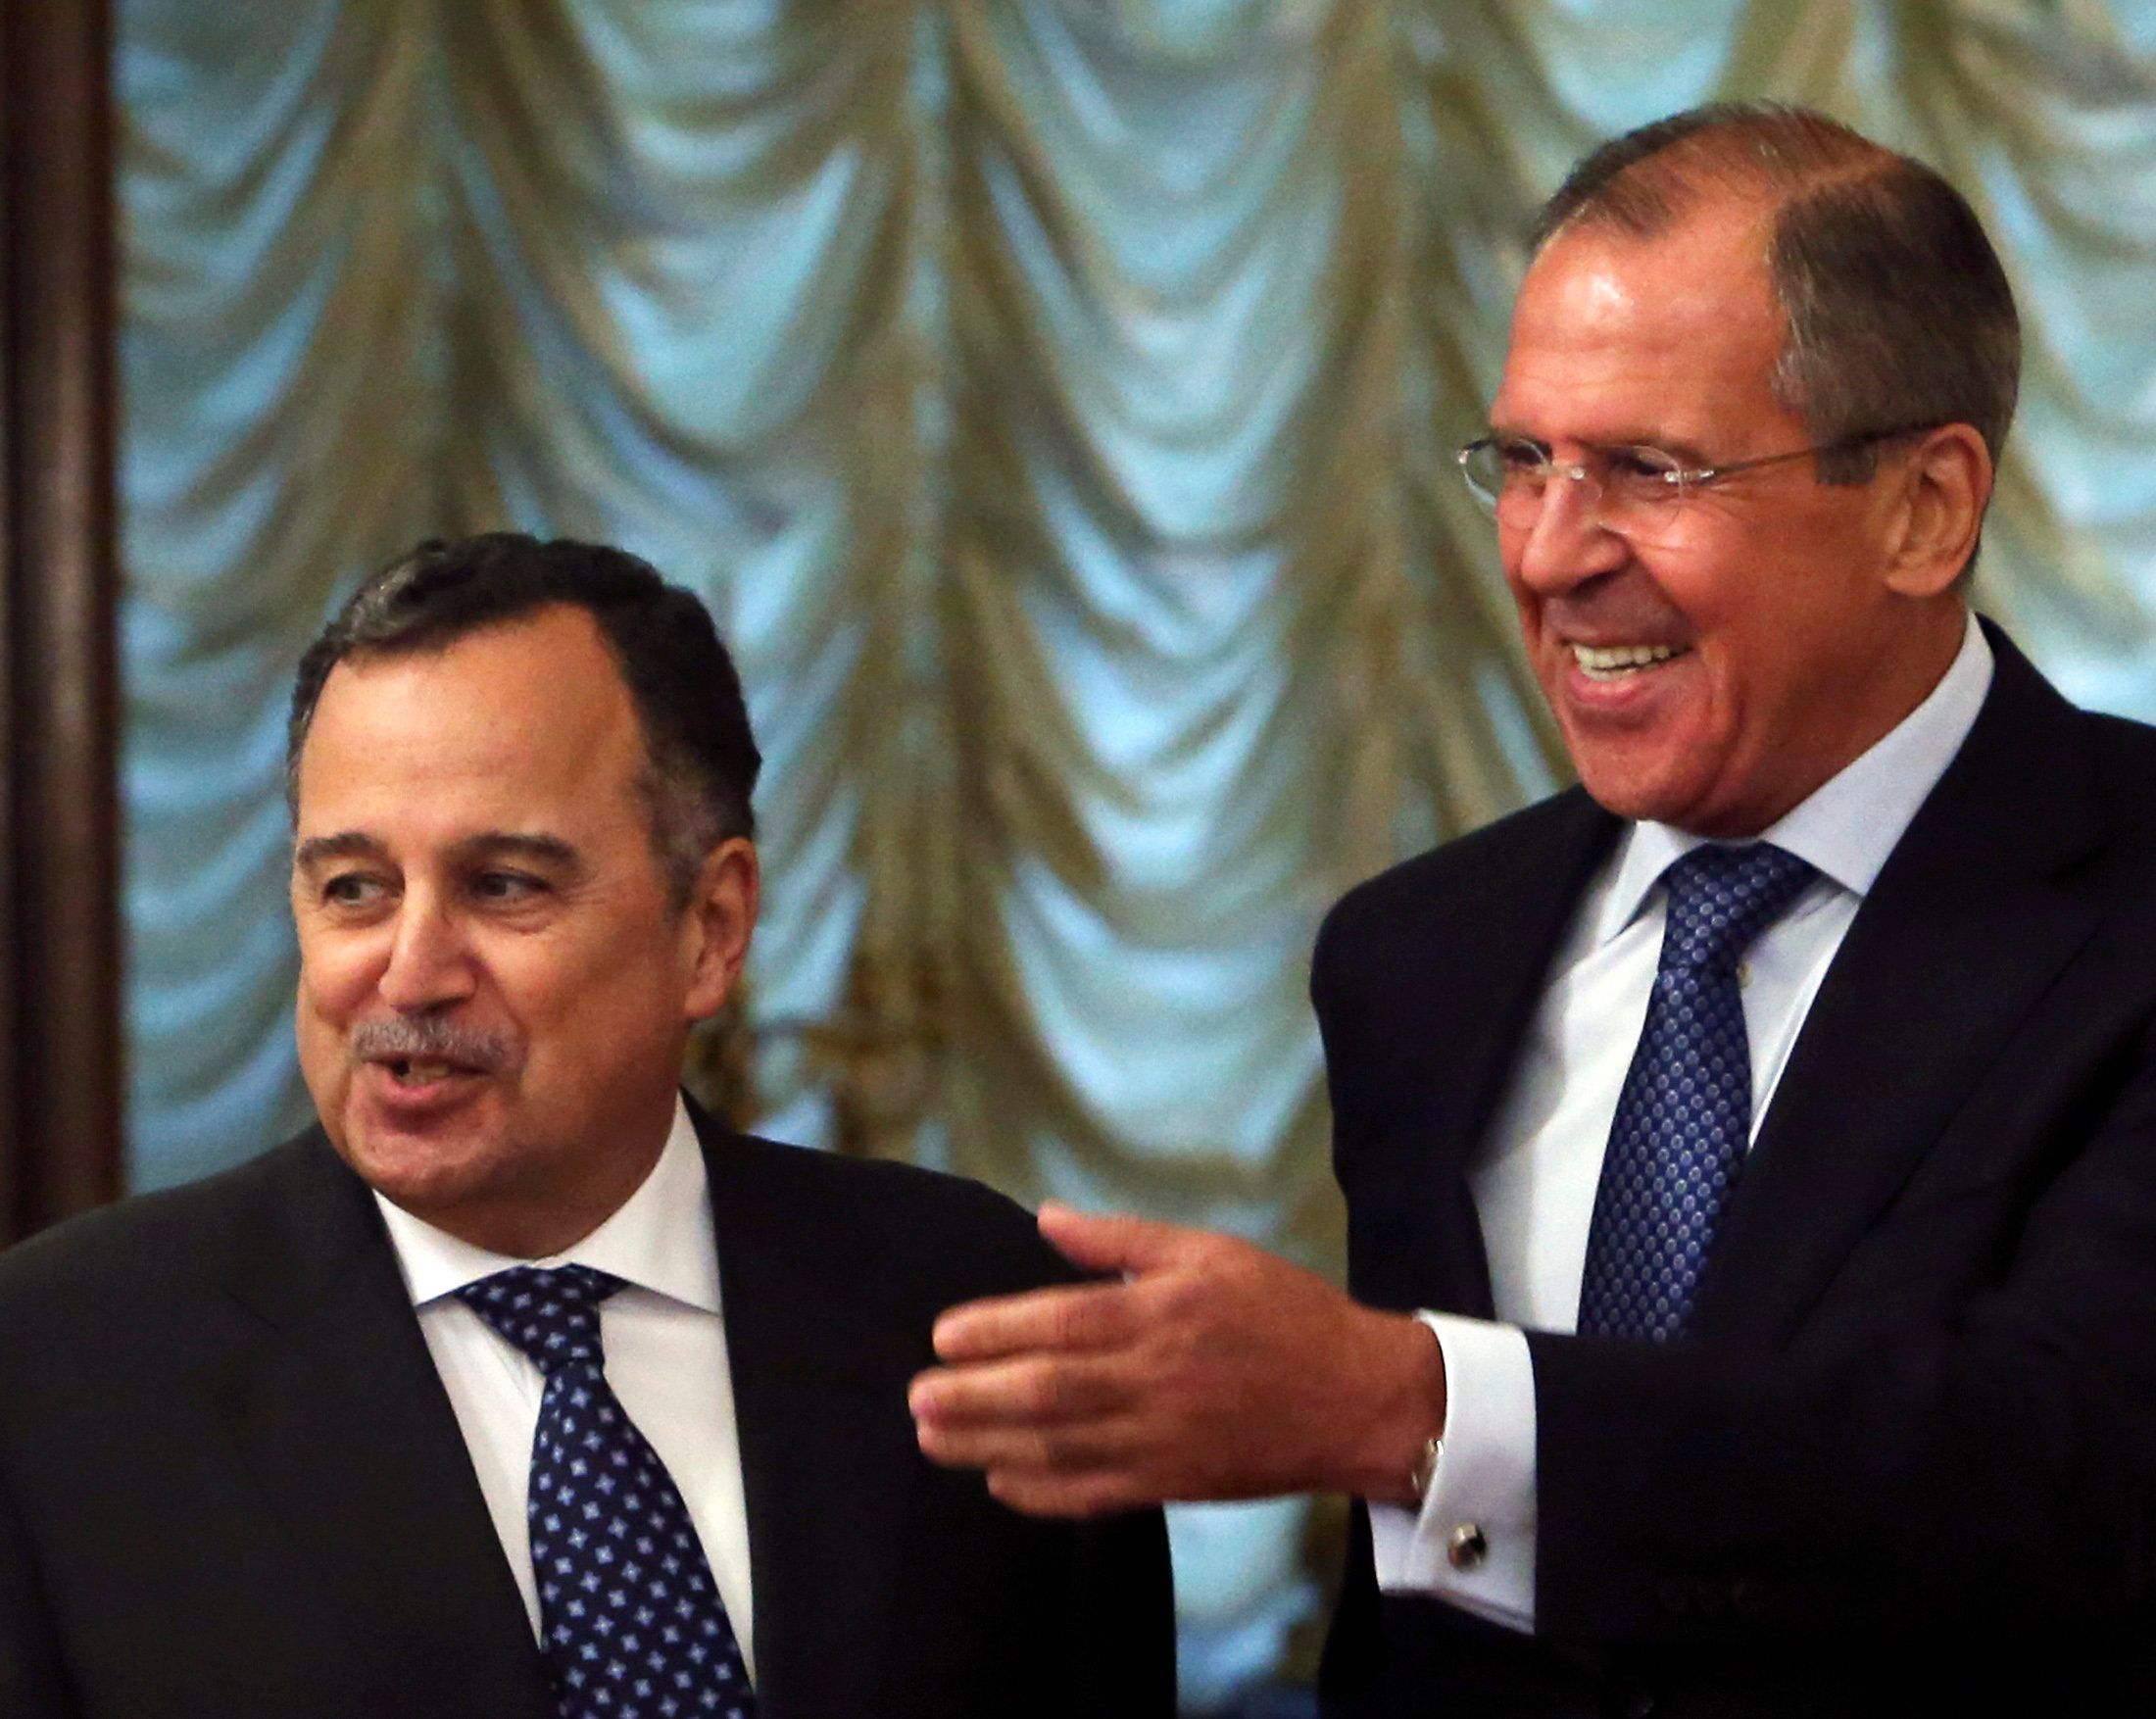 Russian Foreign Minister Sergei Lavrov (R) invites his Egyptian counterpart Nabil Fahmy during their meeting in Moscow September 16, 2013. REUTERS/Sergei Karpukhin (RUSSIA - Tags: POLITICS)